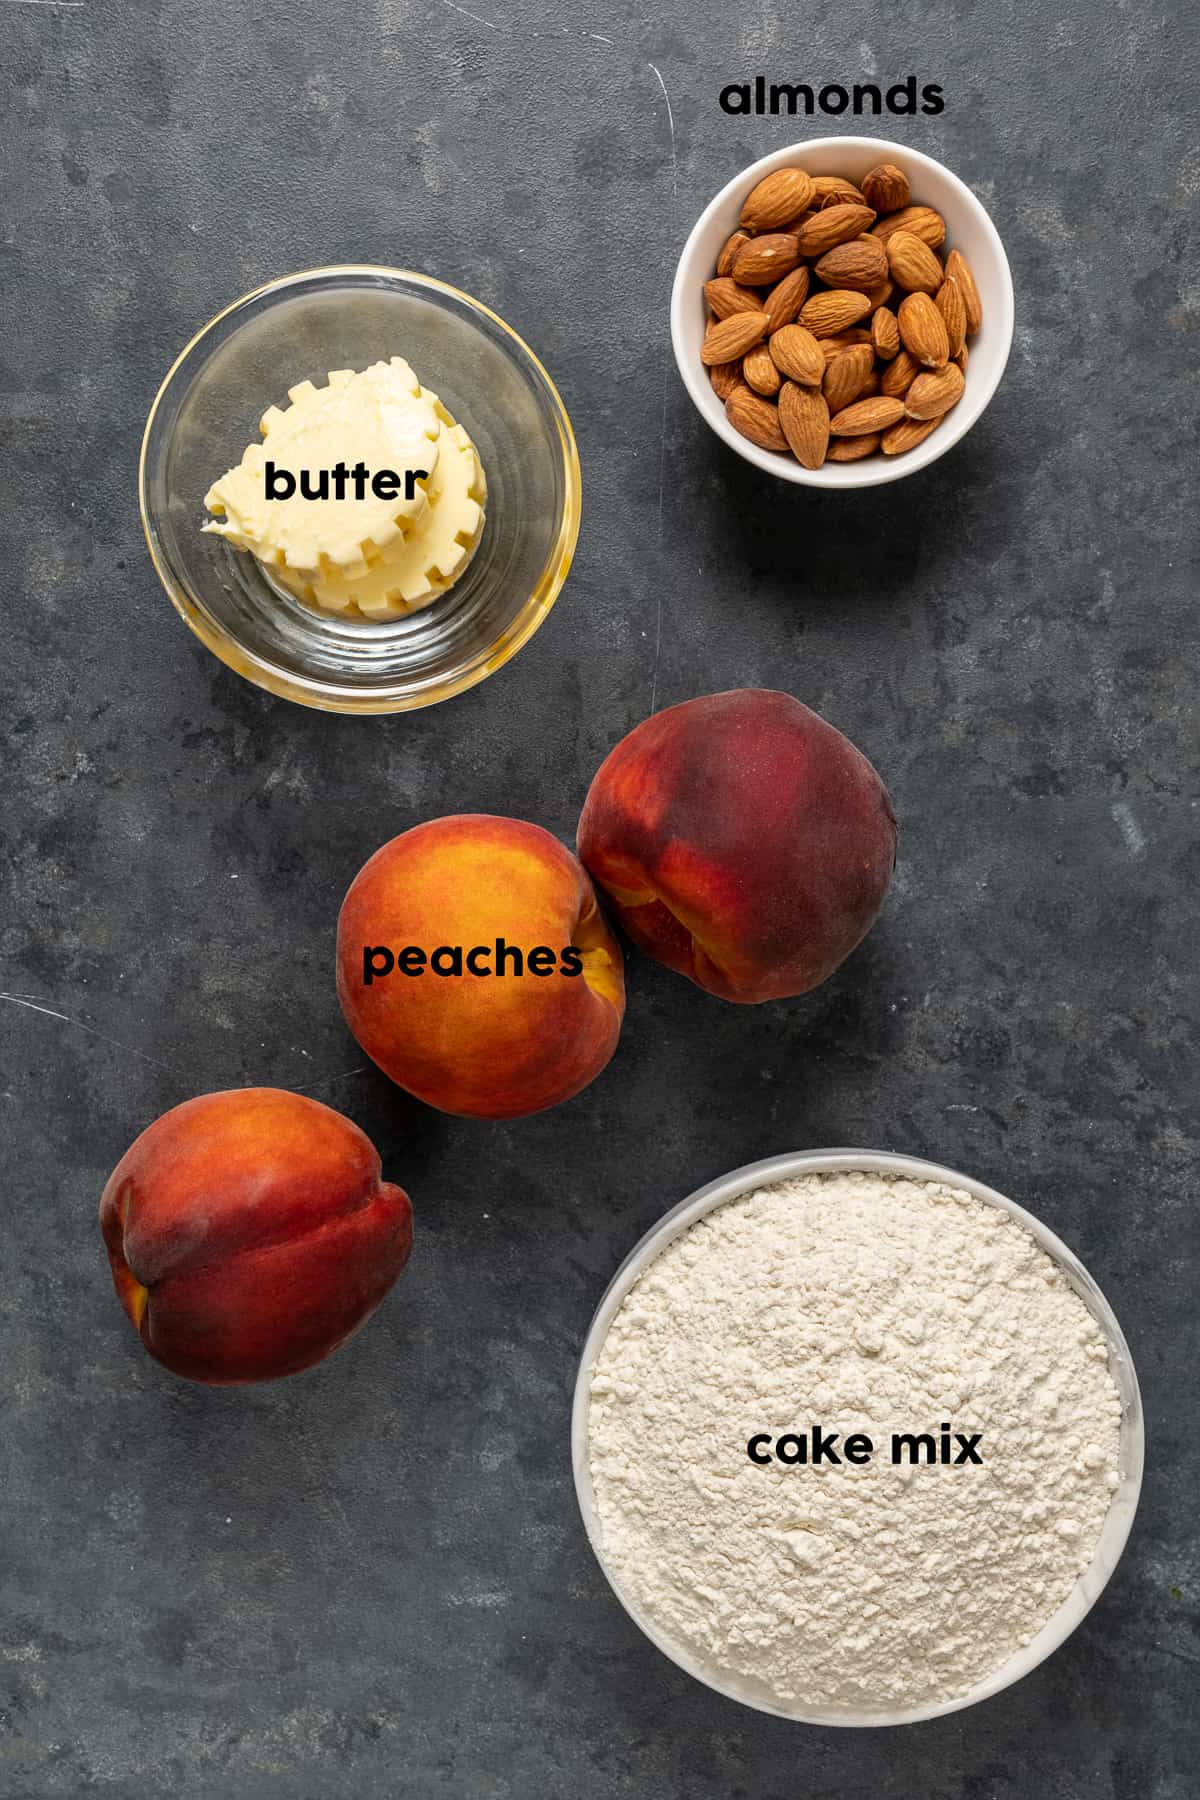 Peaches, butter, almonds and a bowl of cake mix on a dark background.